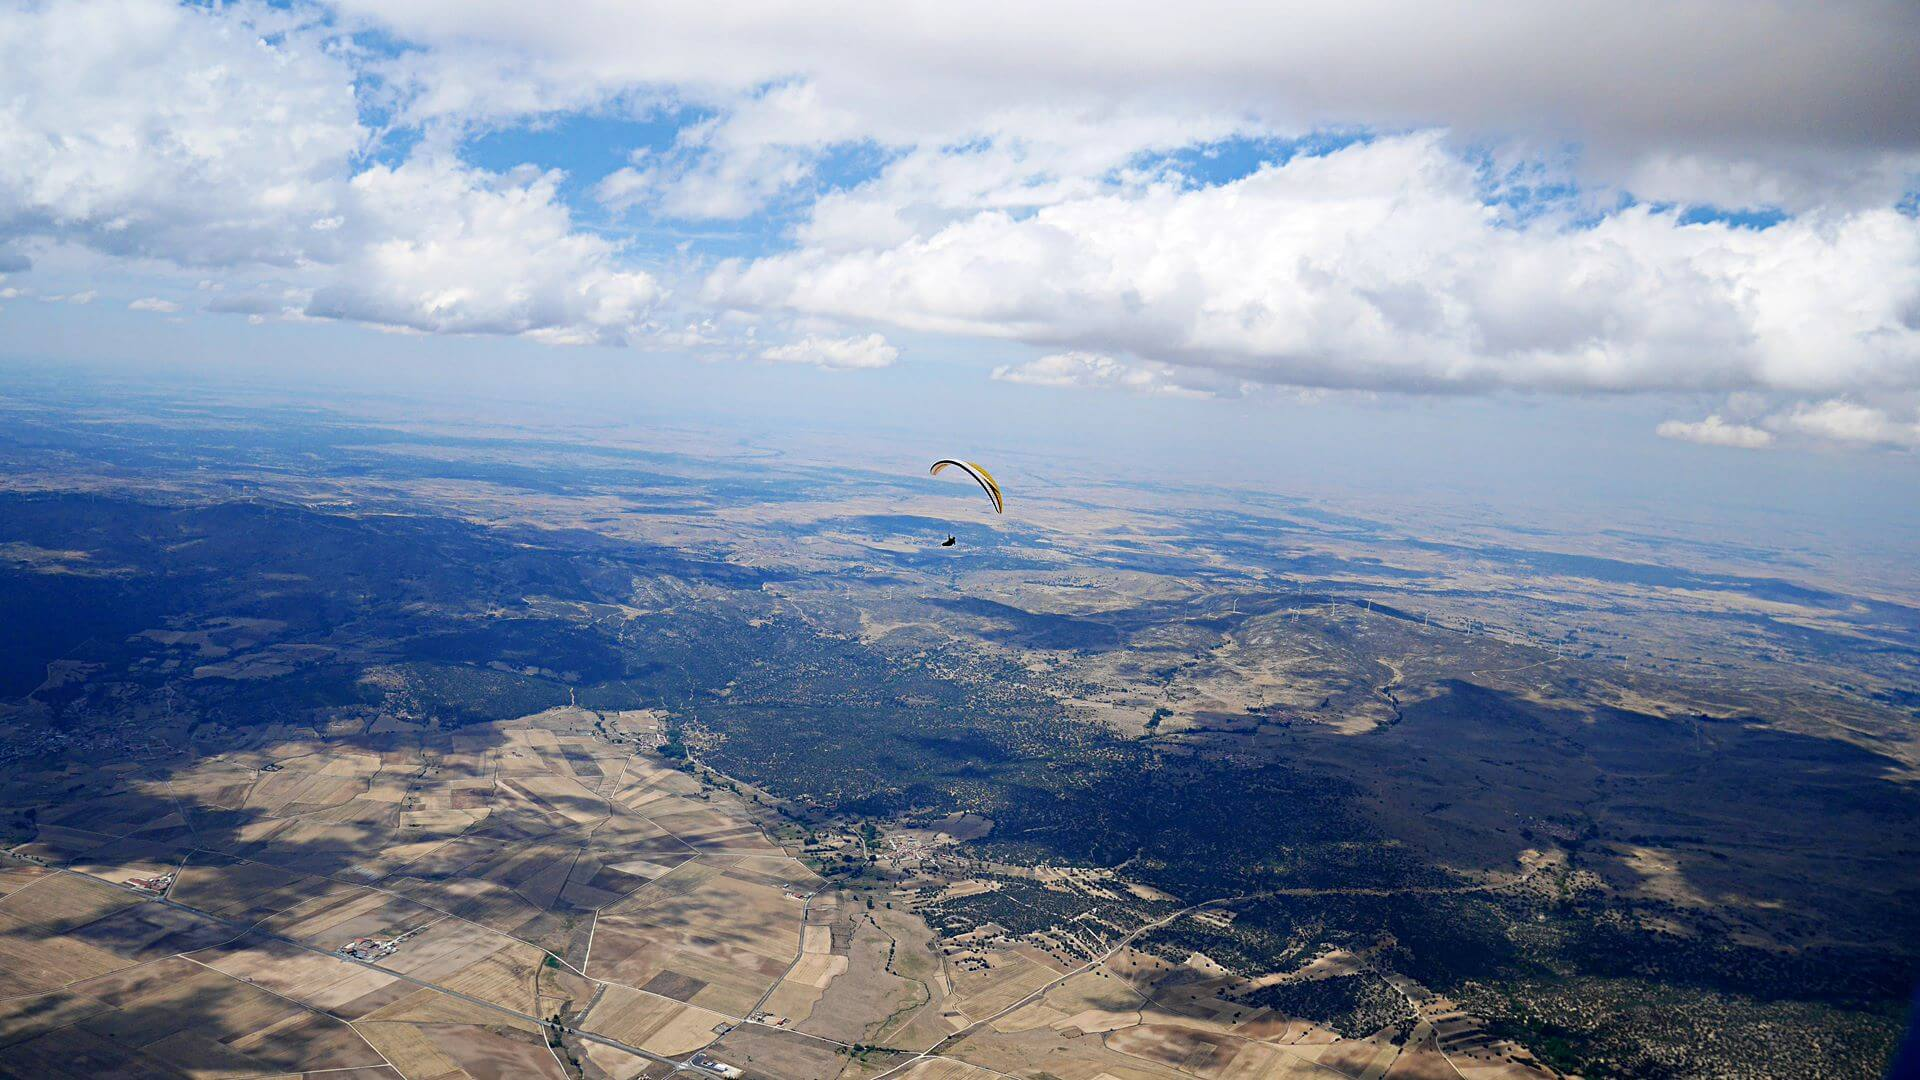 Cross Country Paragliding